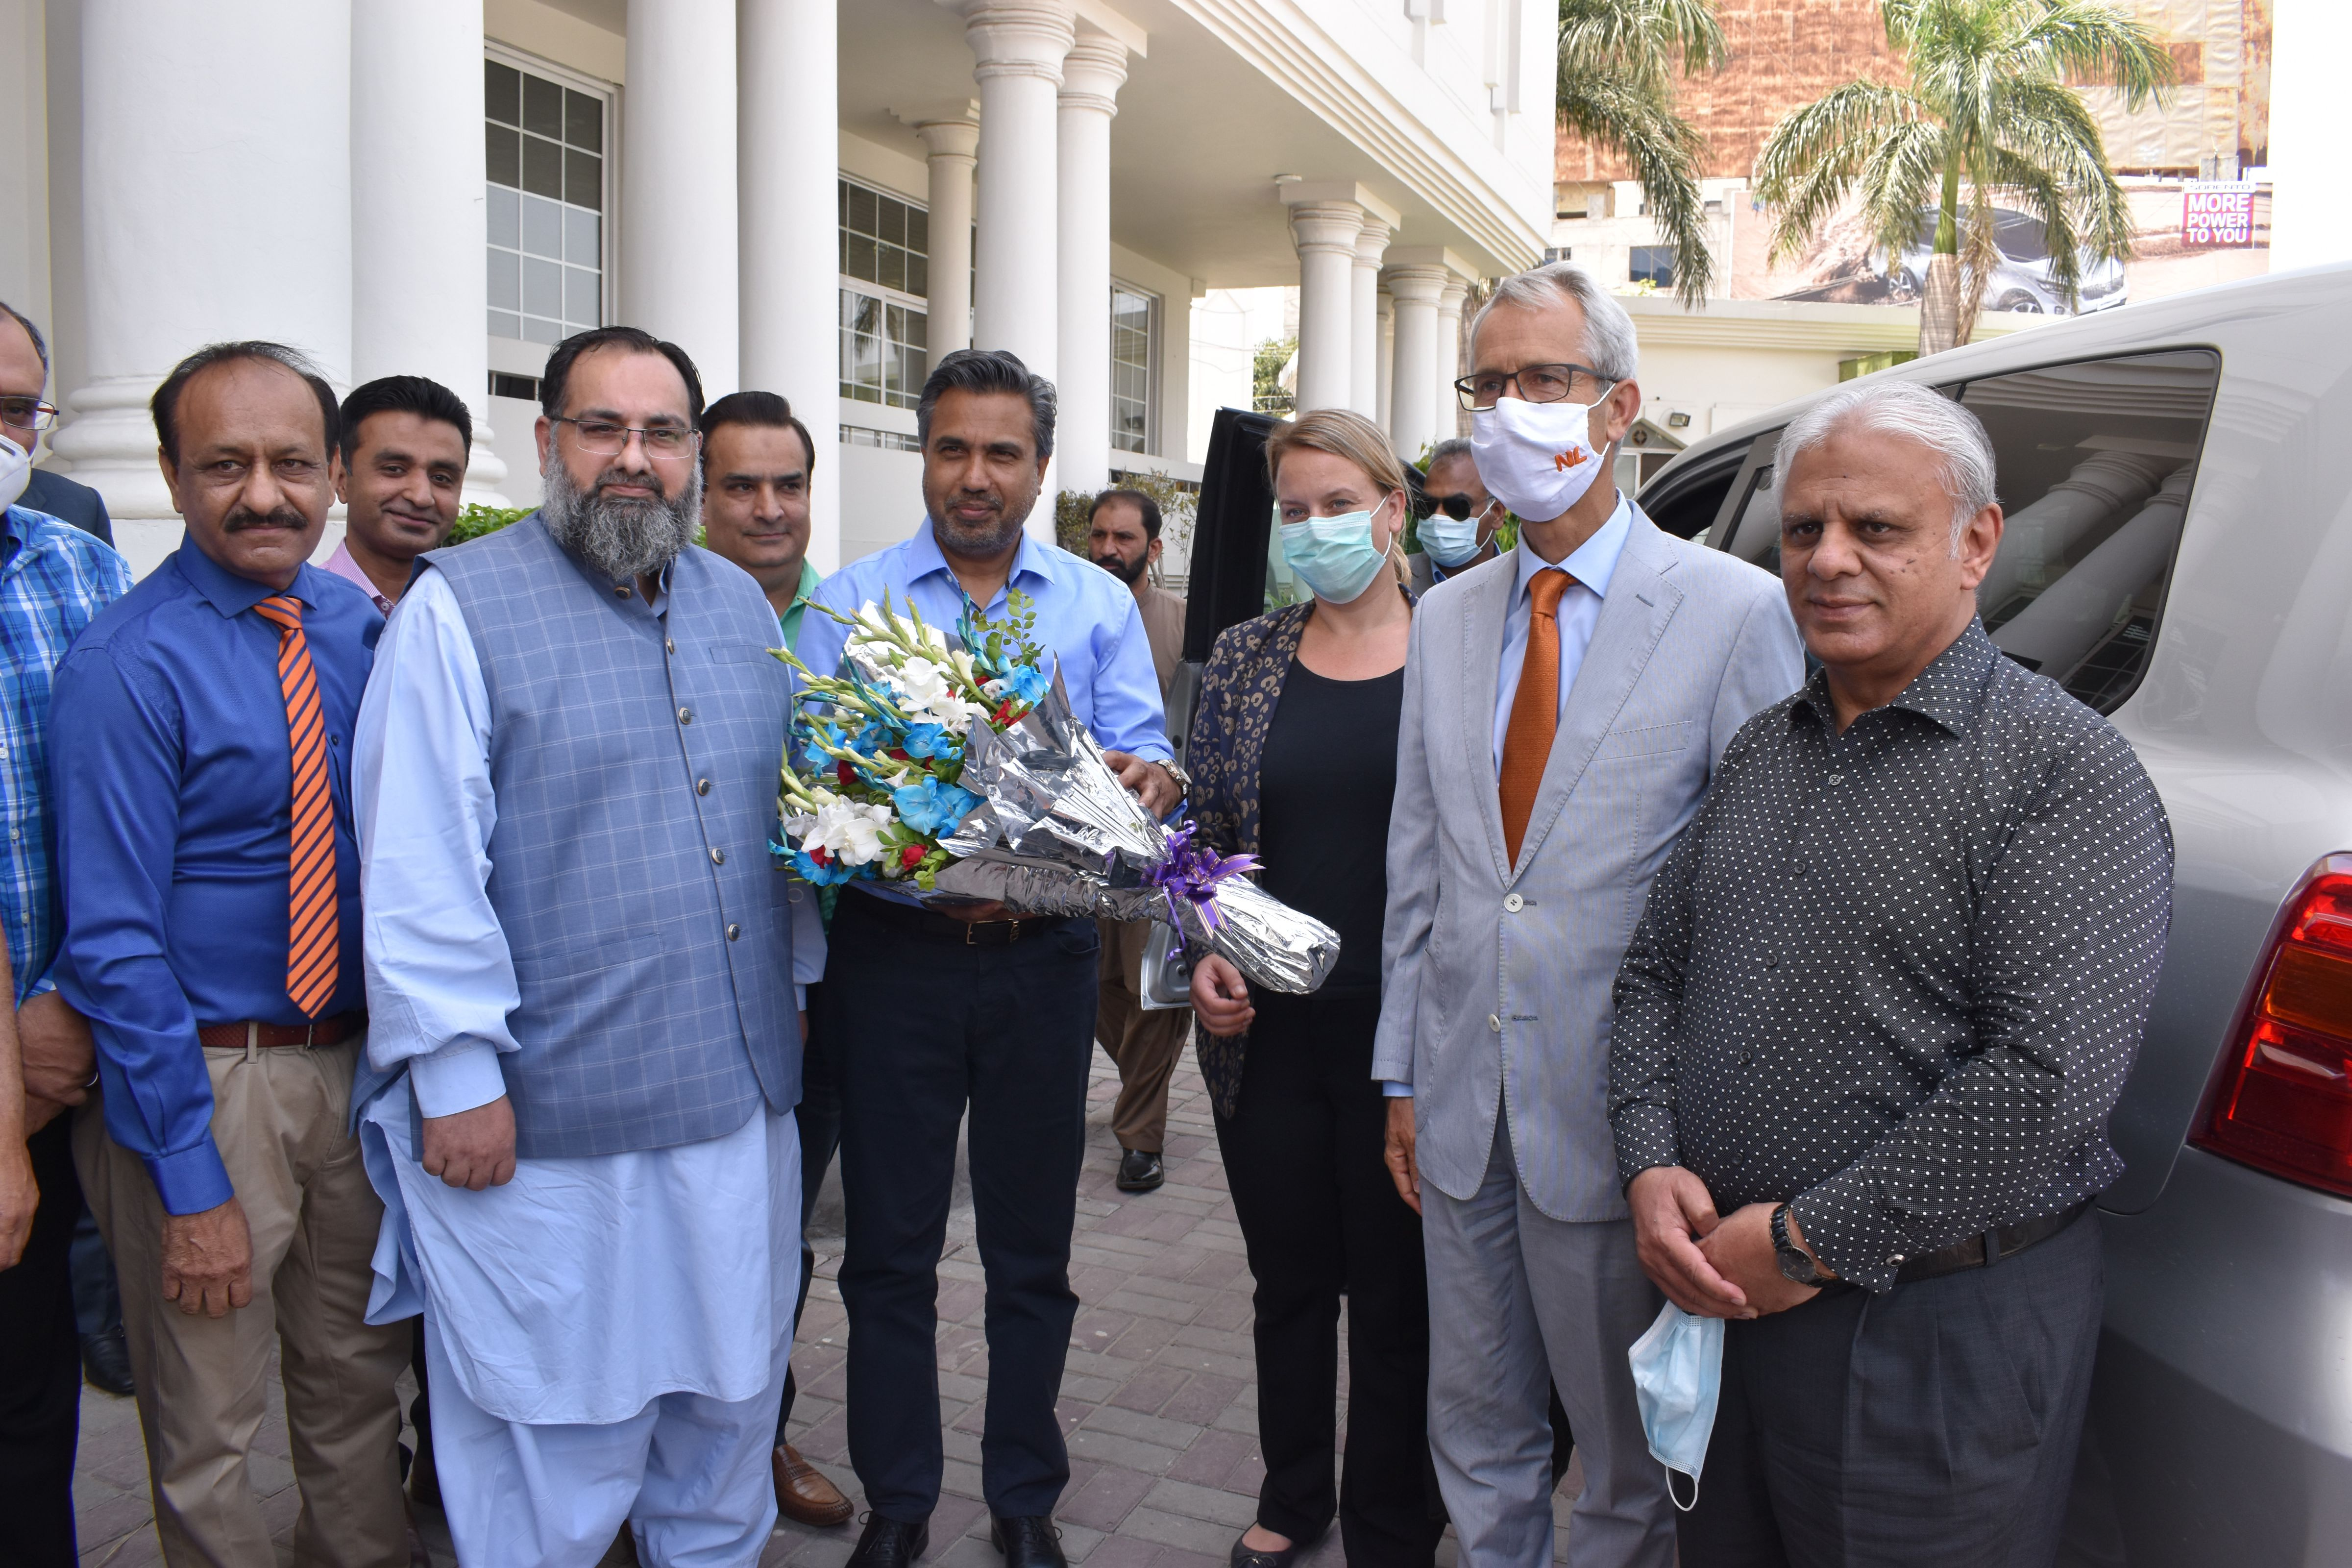 On June 17, 2021, His Excellency's Mr. Wouter Plomp, Ambassador of the Kingdom of Netherlands visited Sialkot Chamber of Commerce and Industry accompanied by Ms. Winnie van der Wal, First Secretary and Ms. Sundus Munawar, Policy Officer Economic Affairs.  Mr. Qaisar Iqbal Baryar, President, SCCI warmly welcomed the honorable guests and shared his immense pleasure on His Excellency visit to Sialkot Chamber which would result in promoting better understanding and cooperation between the Netherlands Embassy in Pakistan and the Sialkot Chamber of Commerce & Industry by enhancing cooperation in bilateral trade and investment.